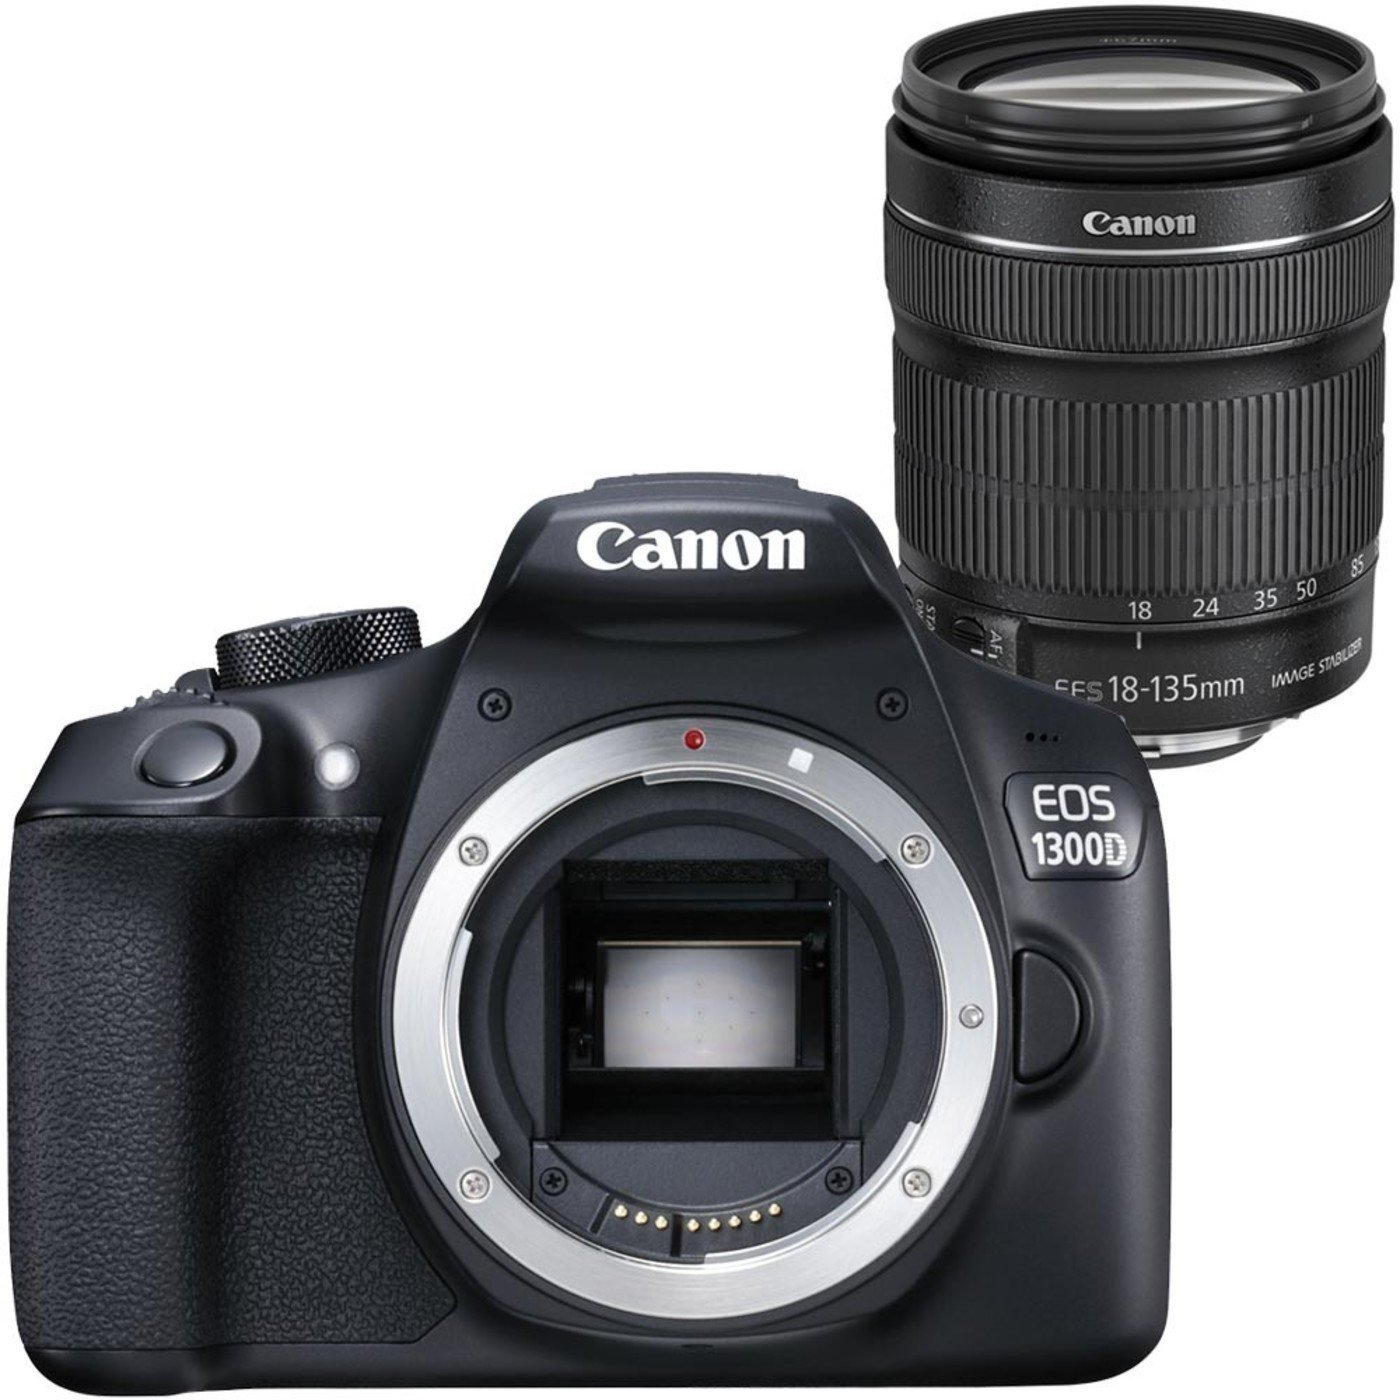 Canon EOS 1300D - Cámara Reflex DE 18 MP (Pantalla de 3'', Full HD, 18-135 mm IS, NFC, WiFi), Color Negro - Kit con Objetivo EF-S 18-135 mm IS